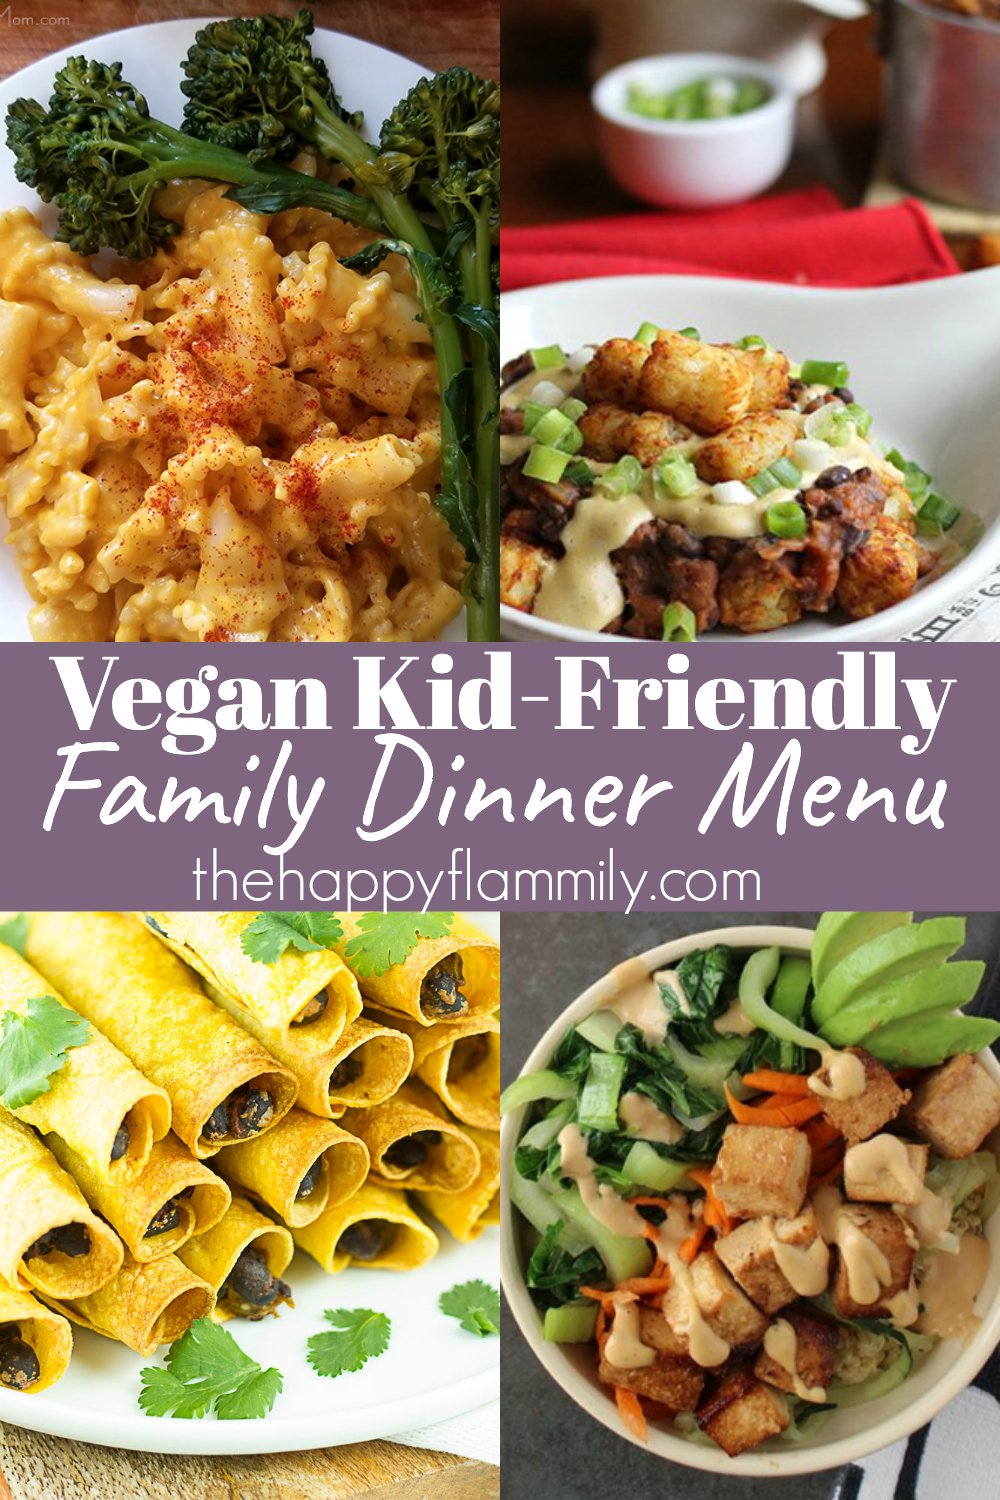 Kid friendly vegan breakfast recipes. Vegan recipes for picky eaters. Vegan recipes for kids' lunch box. Kid friendly vegan meal plan. Kid friendly vegetarian pasta recipes. Vegan family dinner recipes. Vegan family meals. Easy weeknight vegan dinners. Plant based meal ideas. Easy vegan meal ideas. #vegan #plantbased #dinners #kidfriendly #meals #weeknightmeals